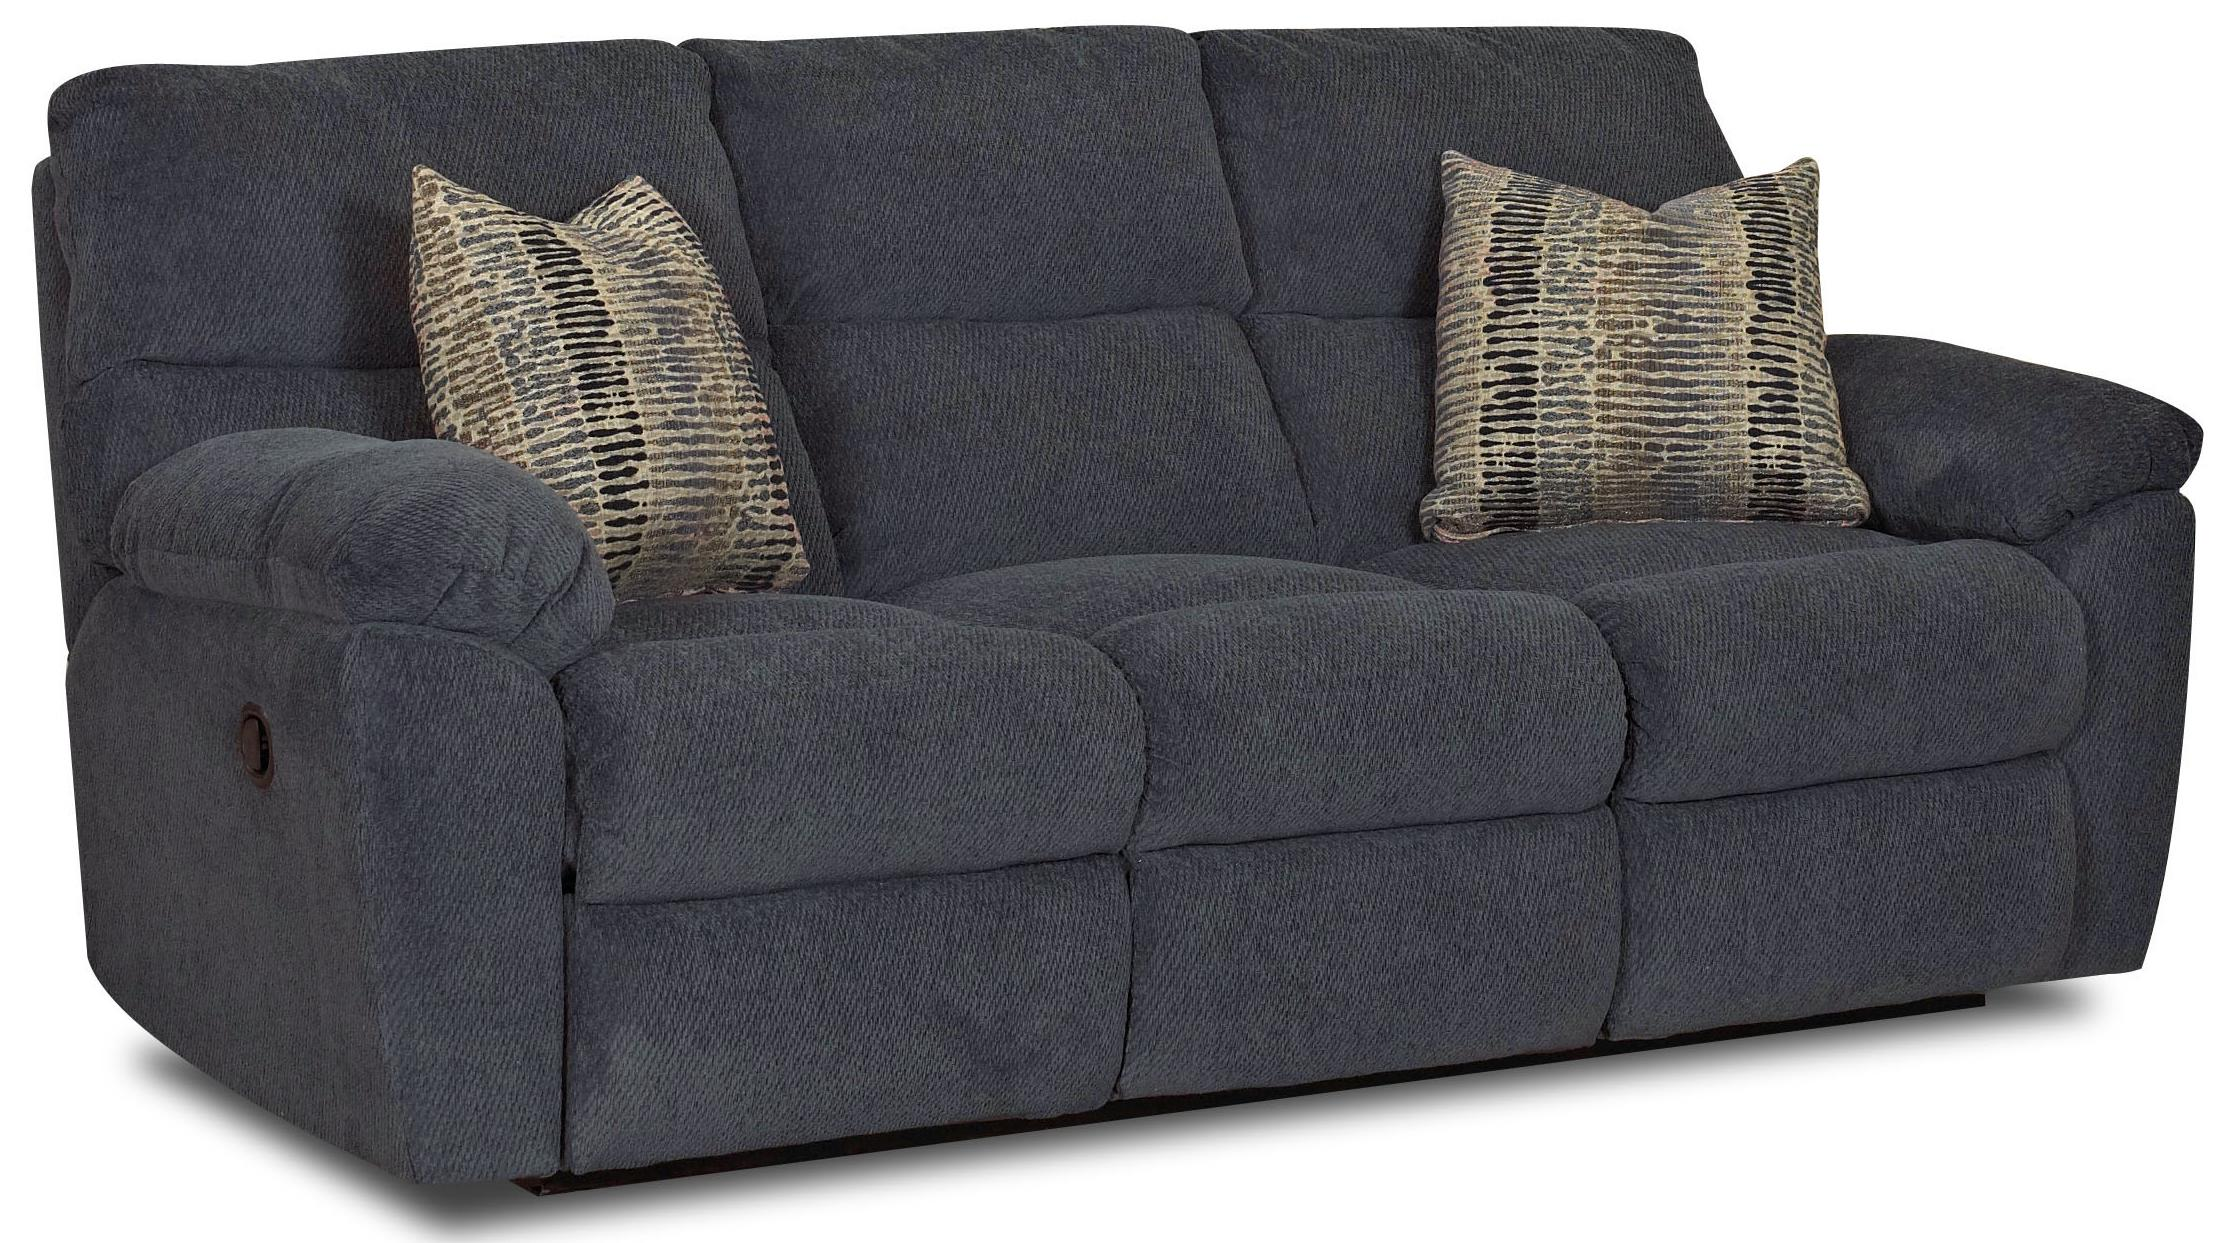 klaussner grand power reclining sofa maverick leather reviews odessa casual with pillow